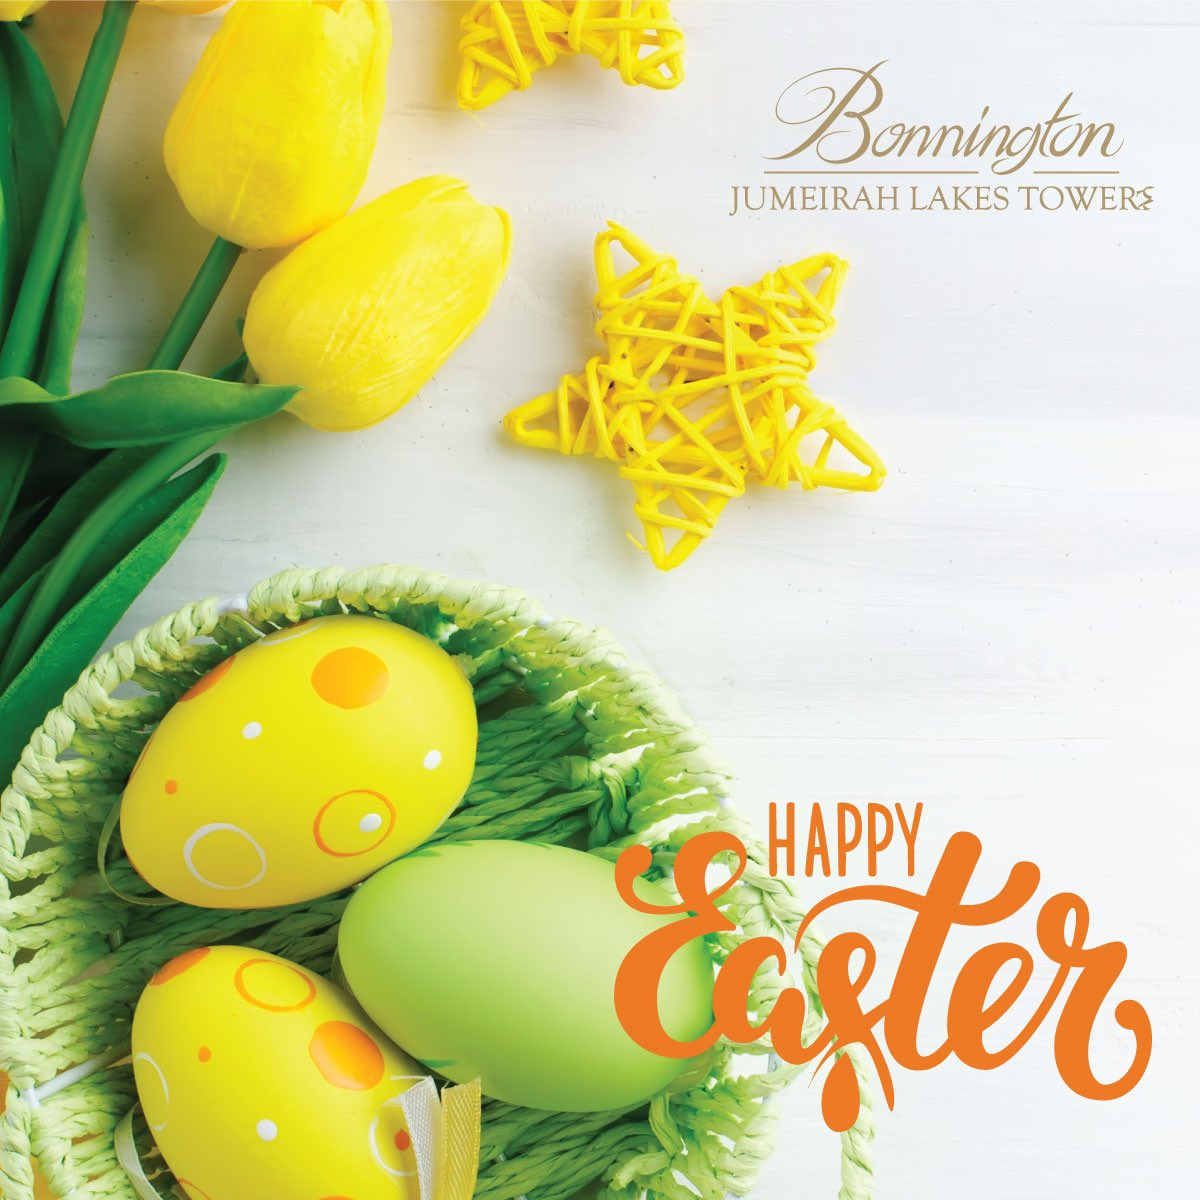 From our family to yours, we wish you a Happy Easter. 🐣 #BonningtonTower   #HappyEaster #Easter #EasterSunday https://t.co/AmBElDTh2U